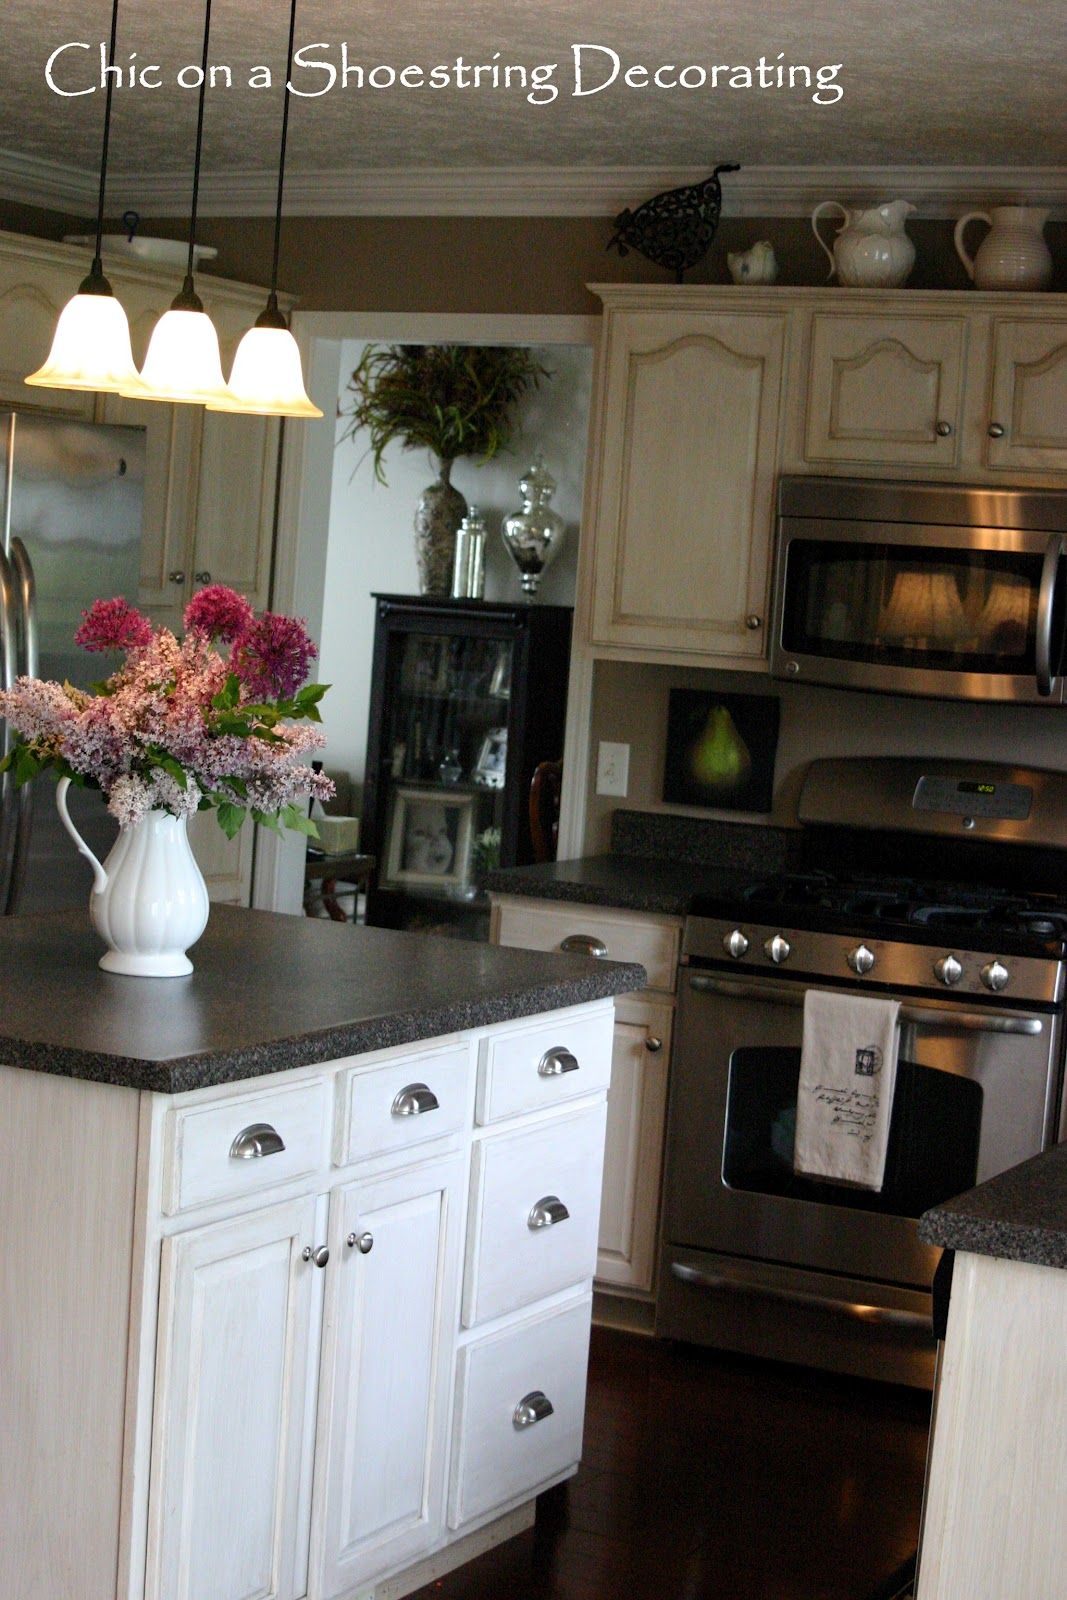 handles or knobs for kitchen cabinets chic on a shoestring decorating how to change your 16173